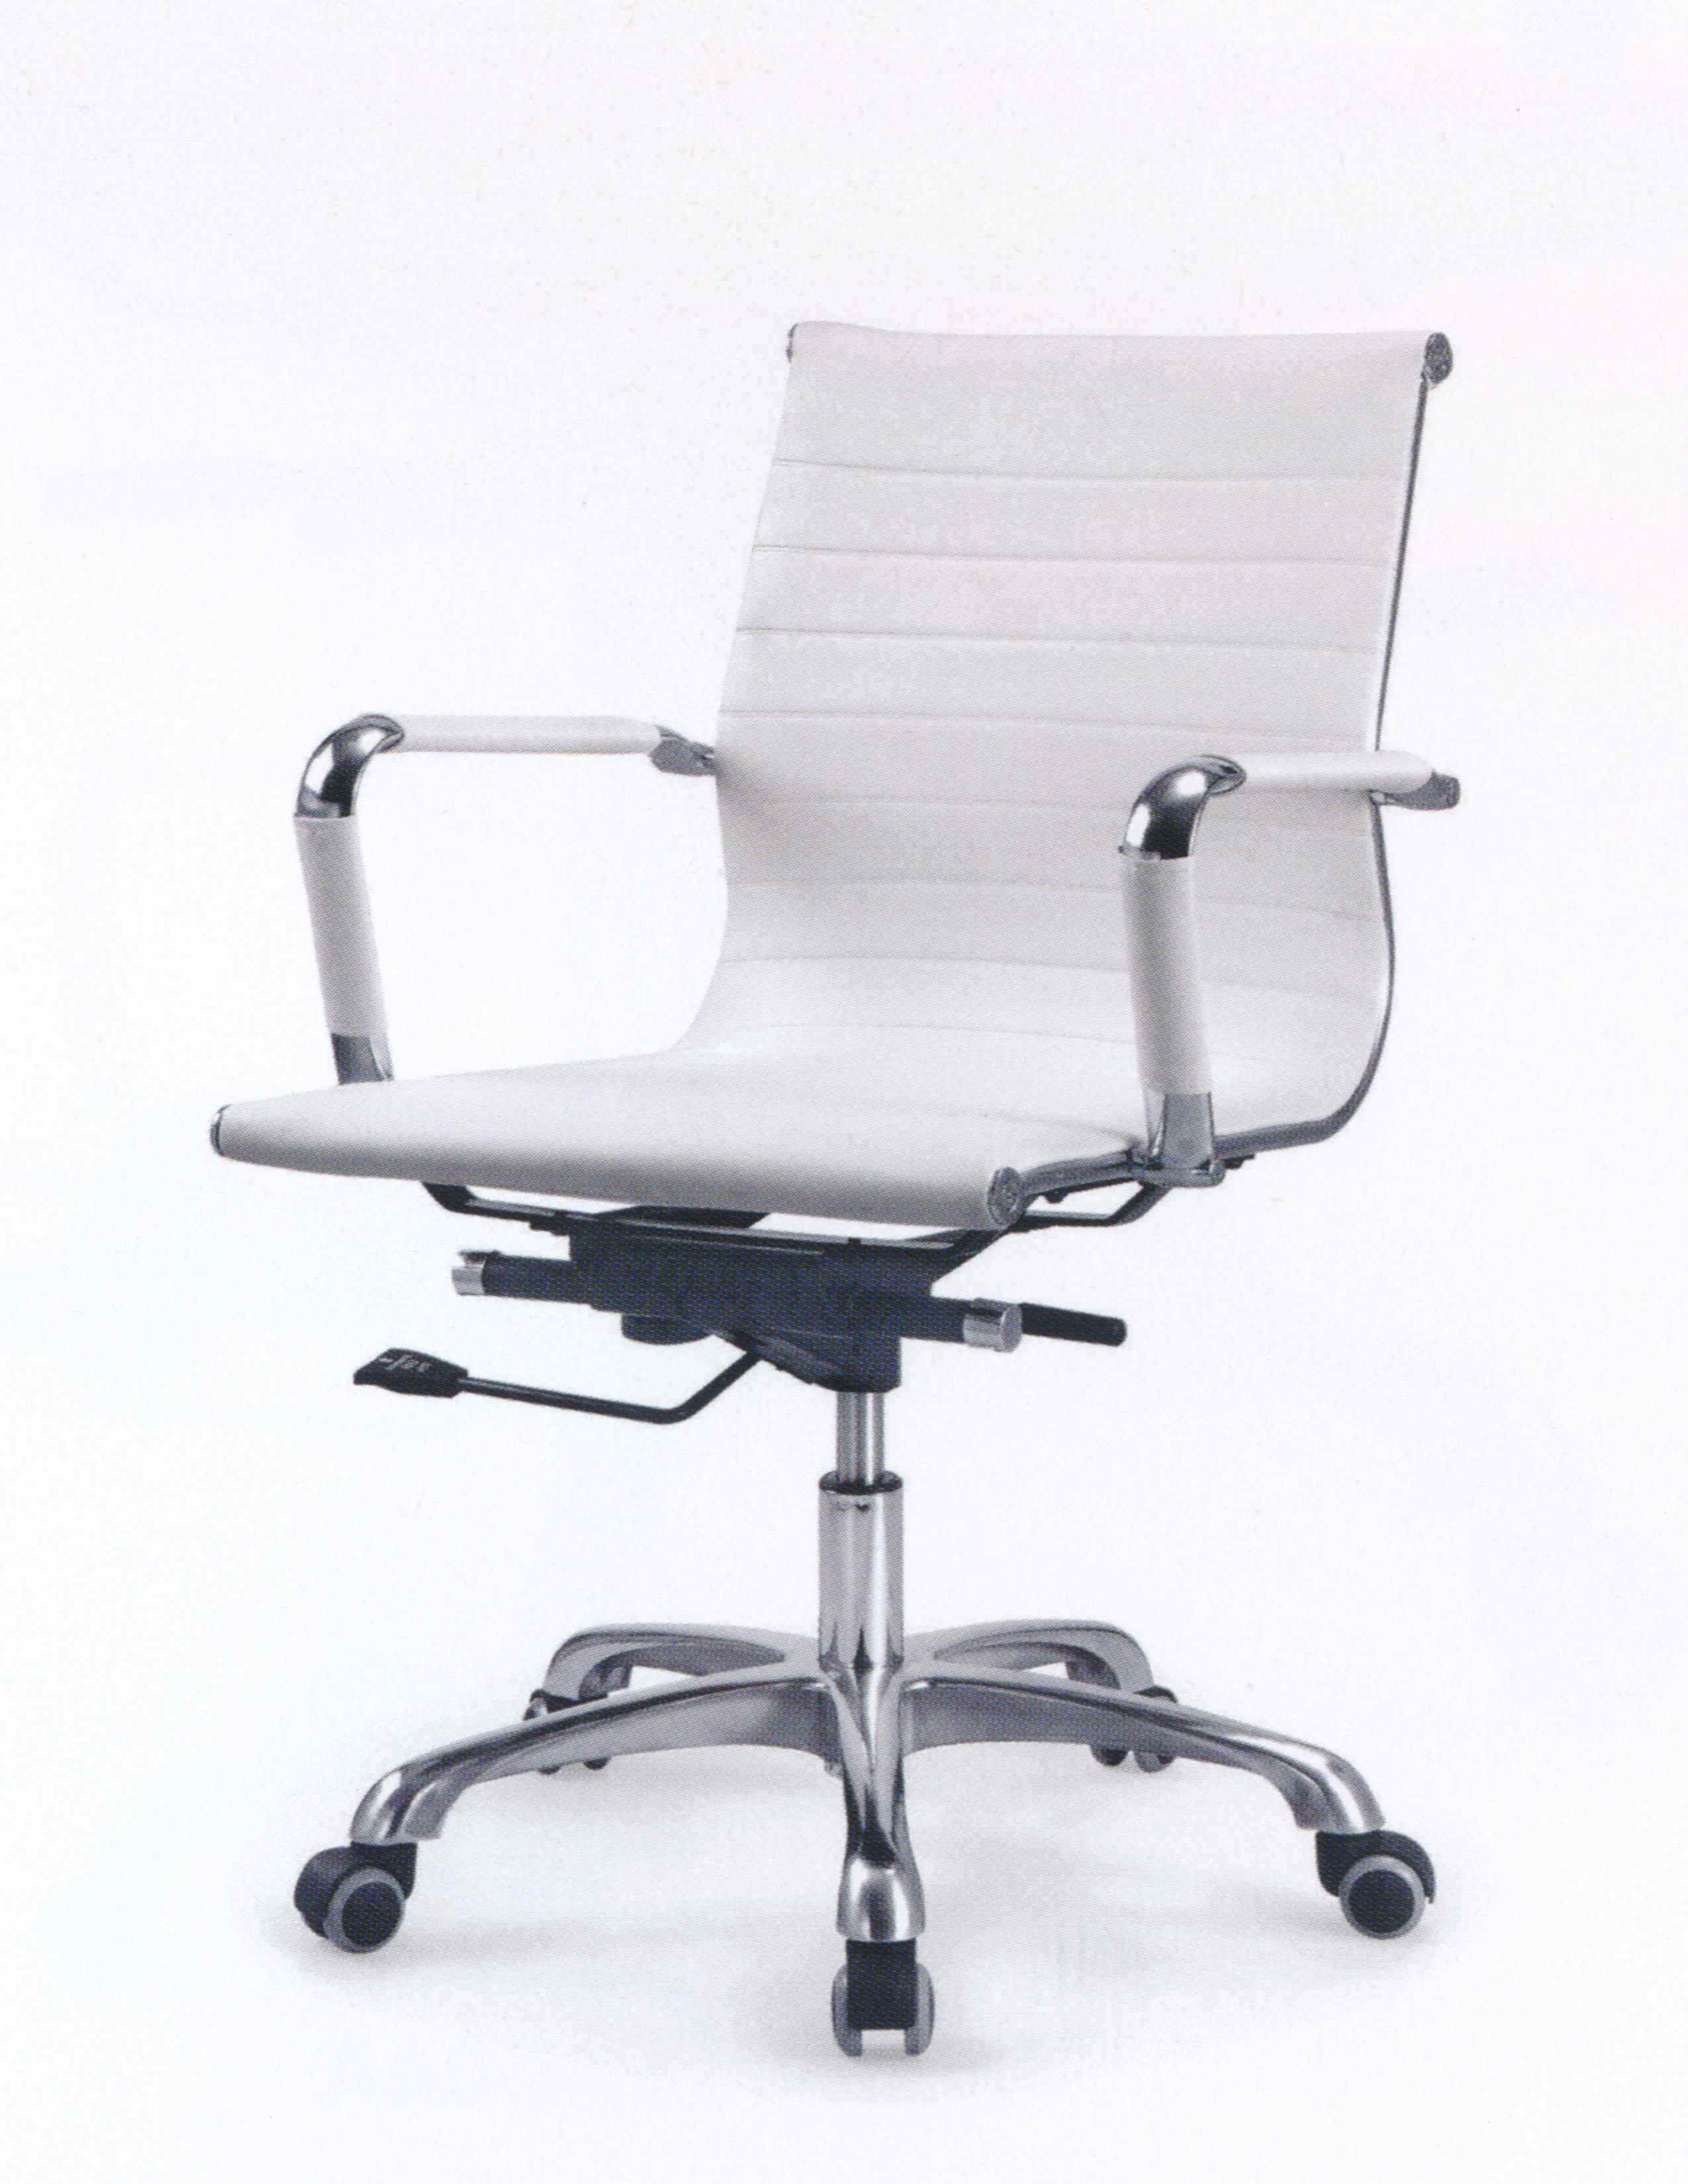 ZHPSOC-01 Swivel Office Chair with PU Leather Surface